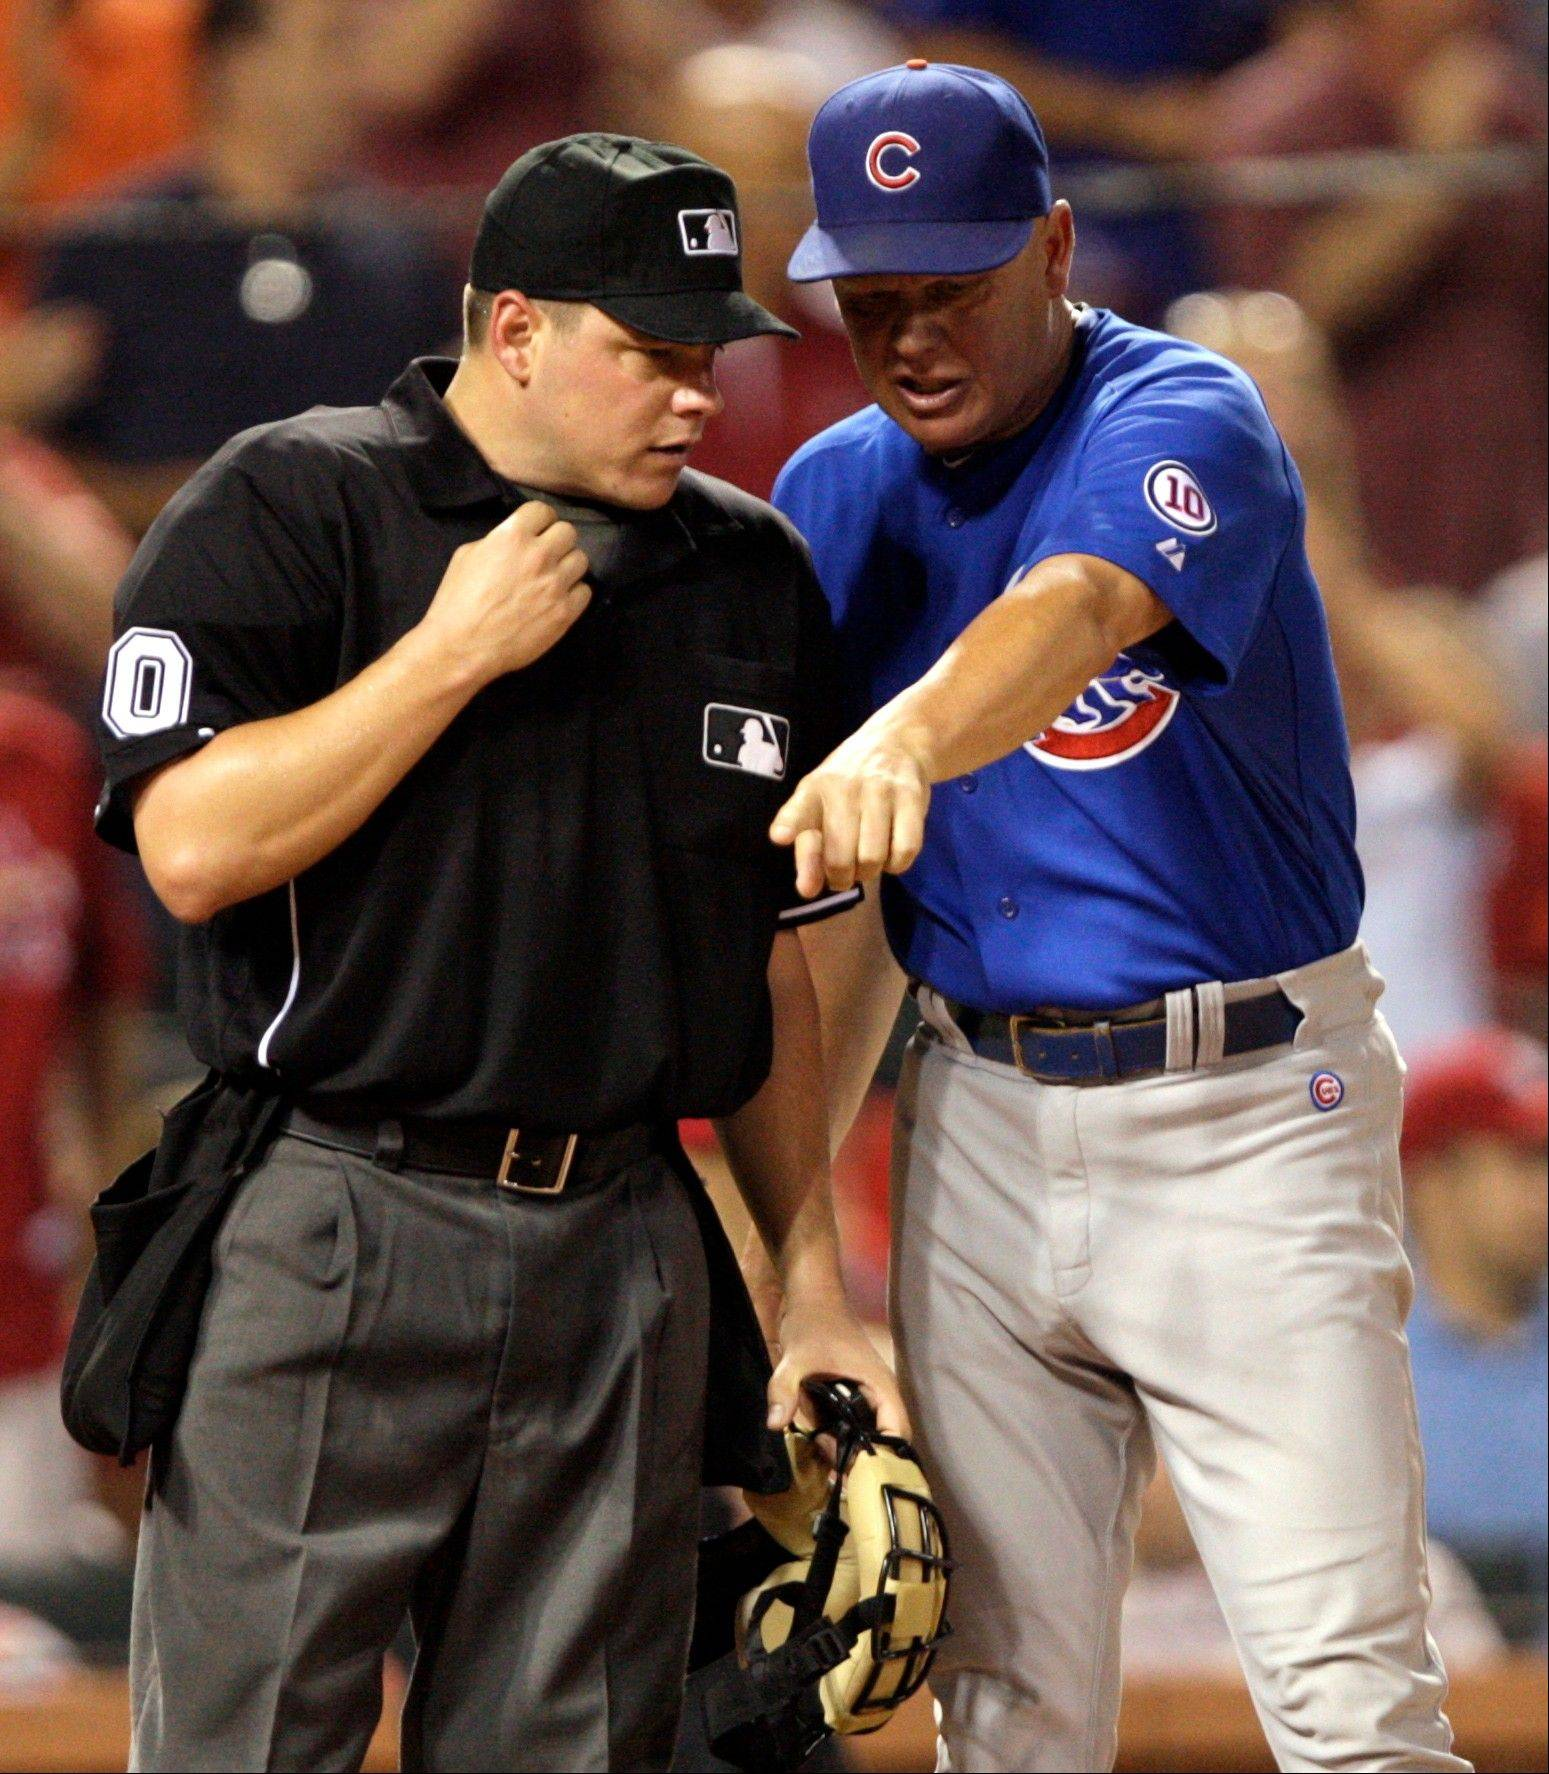 Cubs manager Mike Quade argues a call at the plate with home plate umpire D.J. Reyburn in the seventh inning Friday.